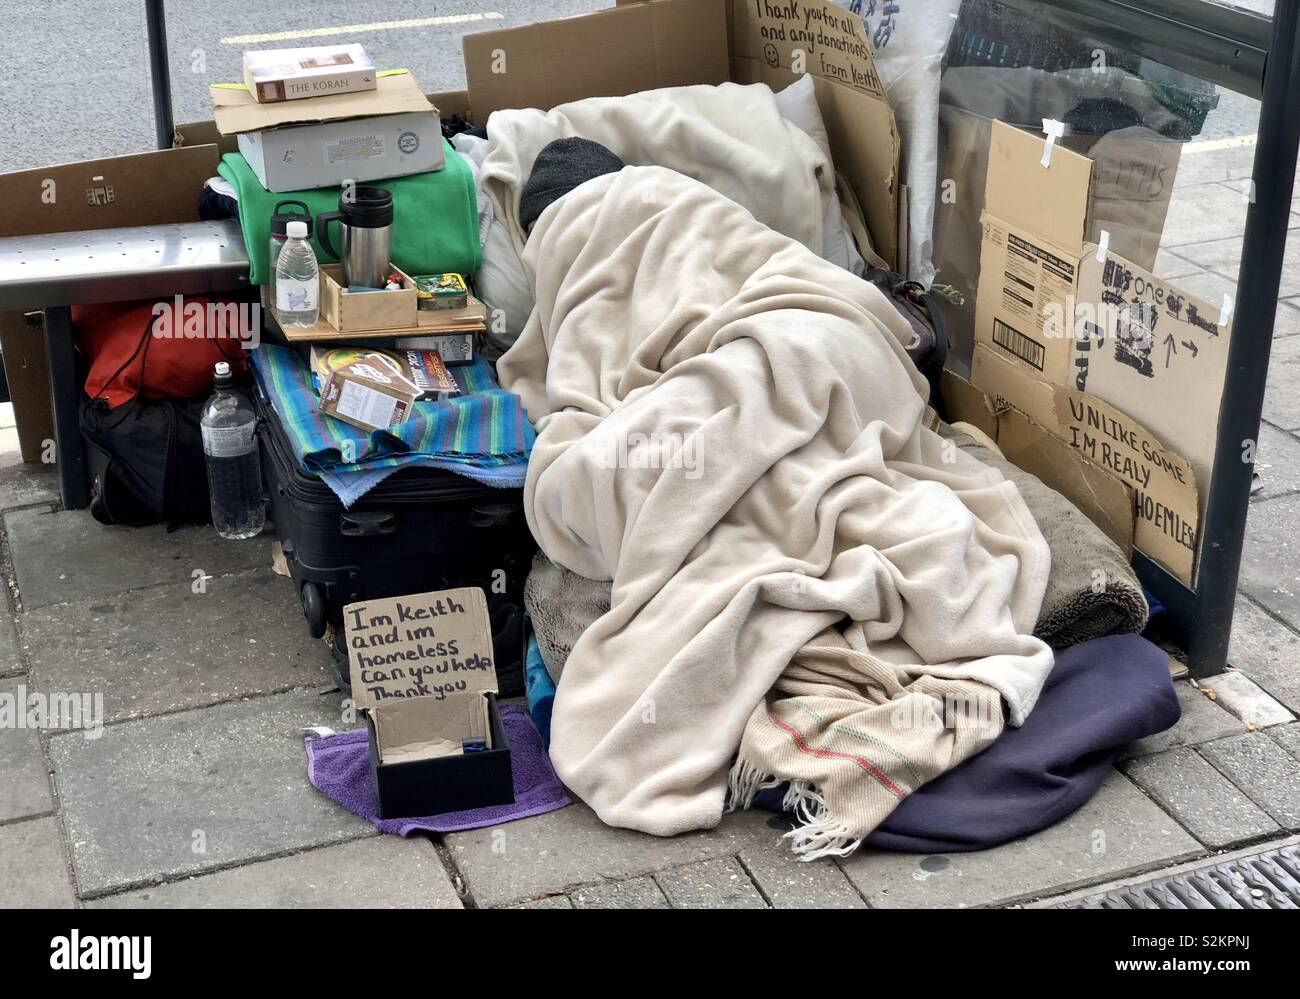 Homelessness in the UK. - Stock Image